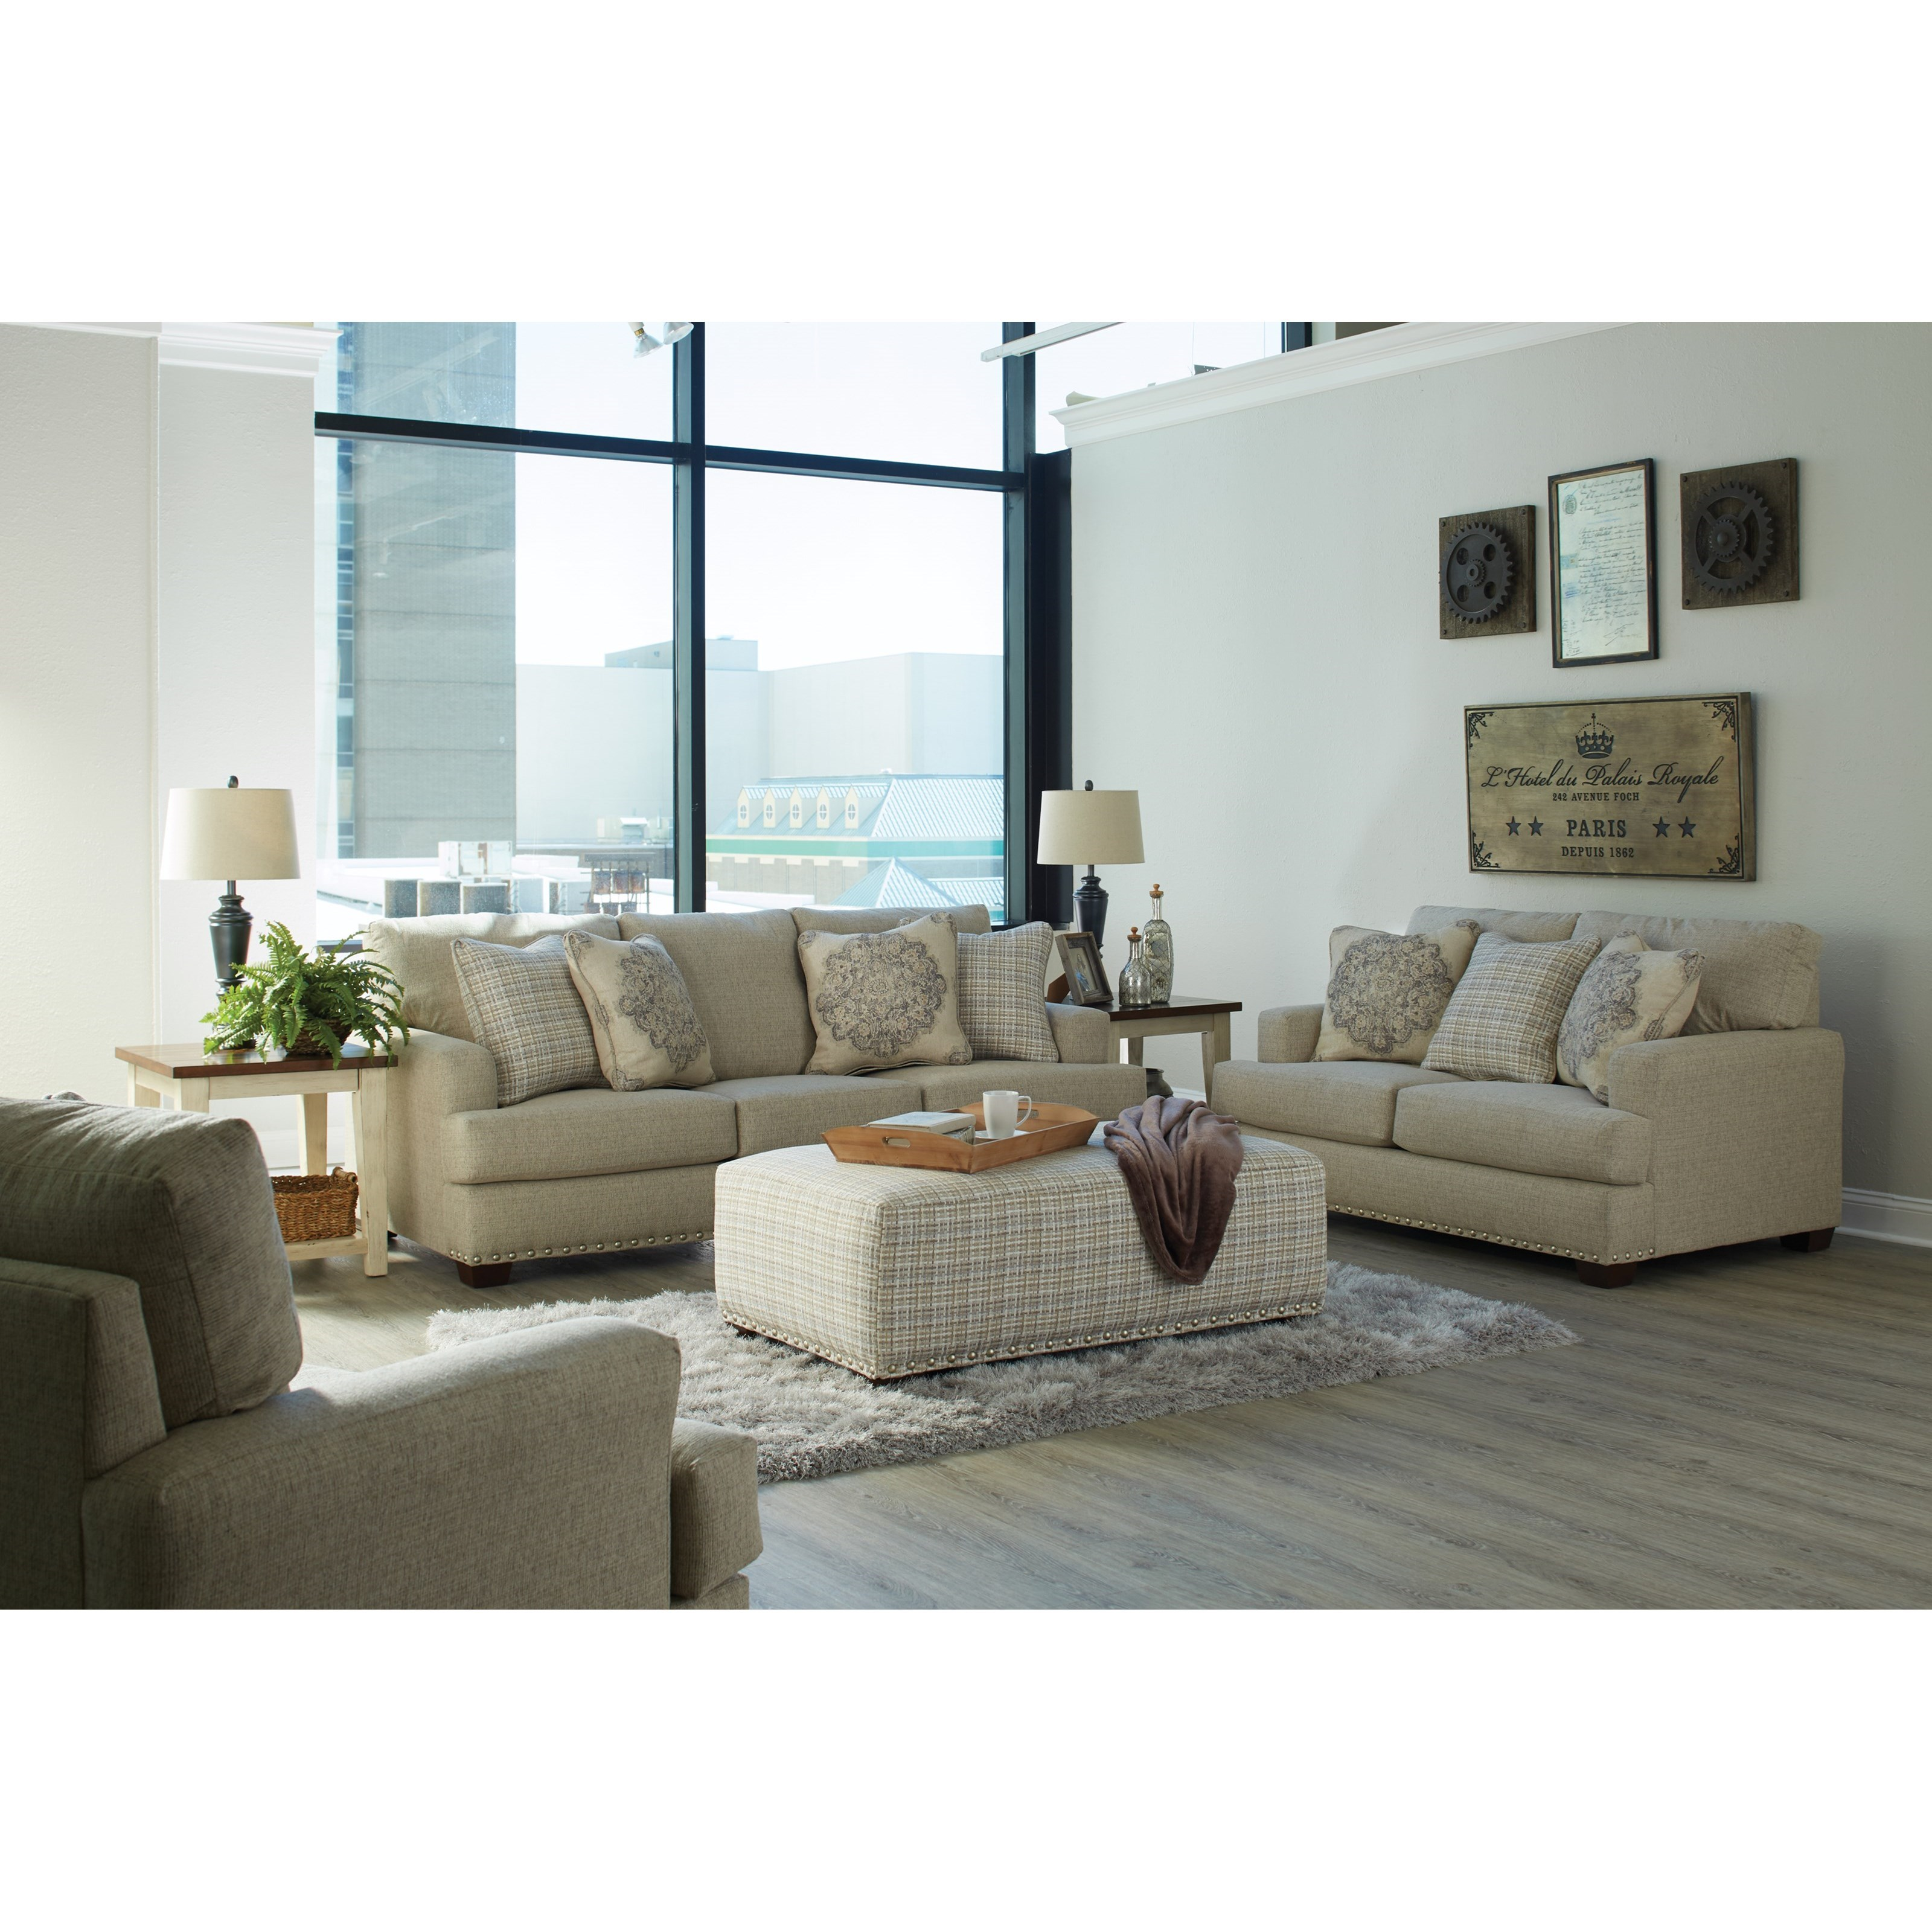 Newberg Living Room Group by Jackson Furniture at Northeast Factory Direct